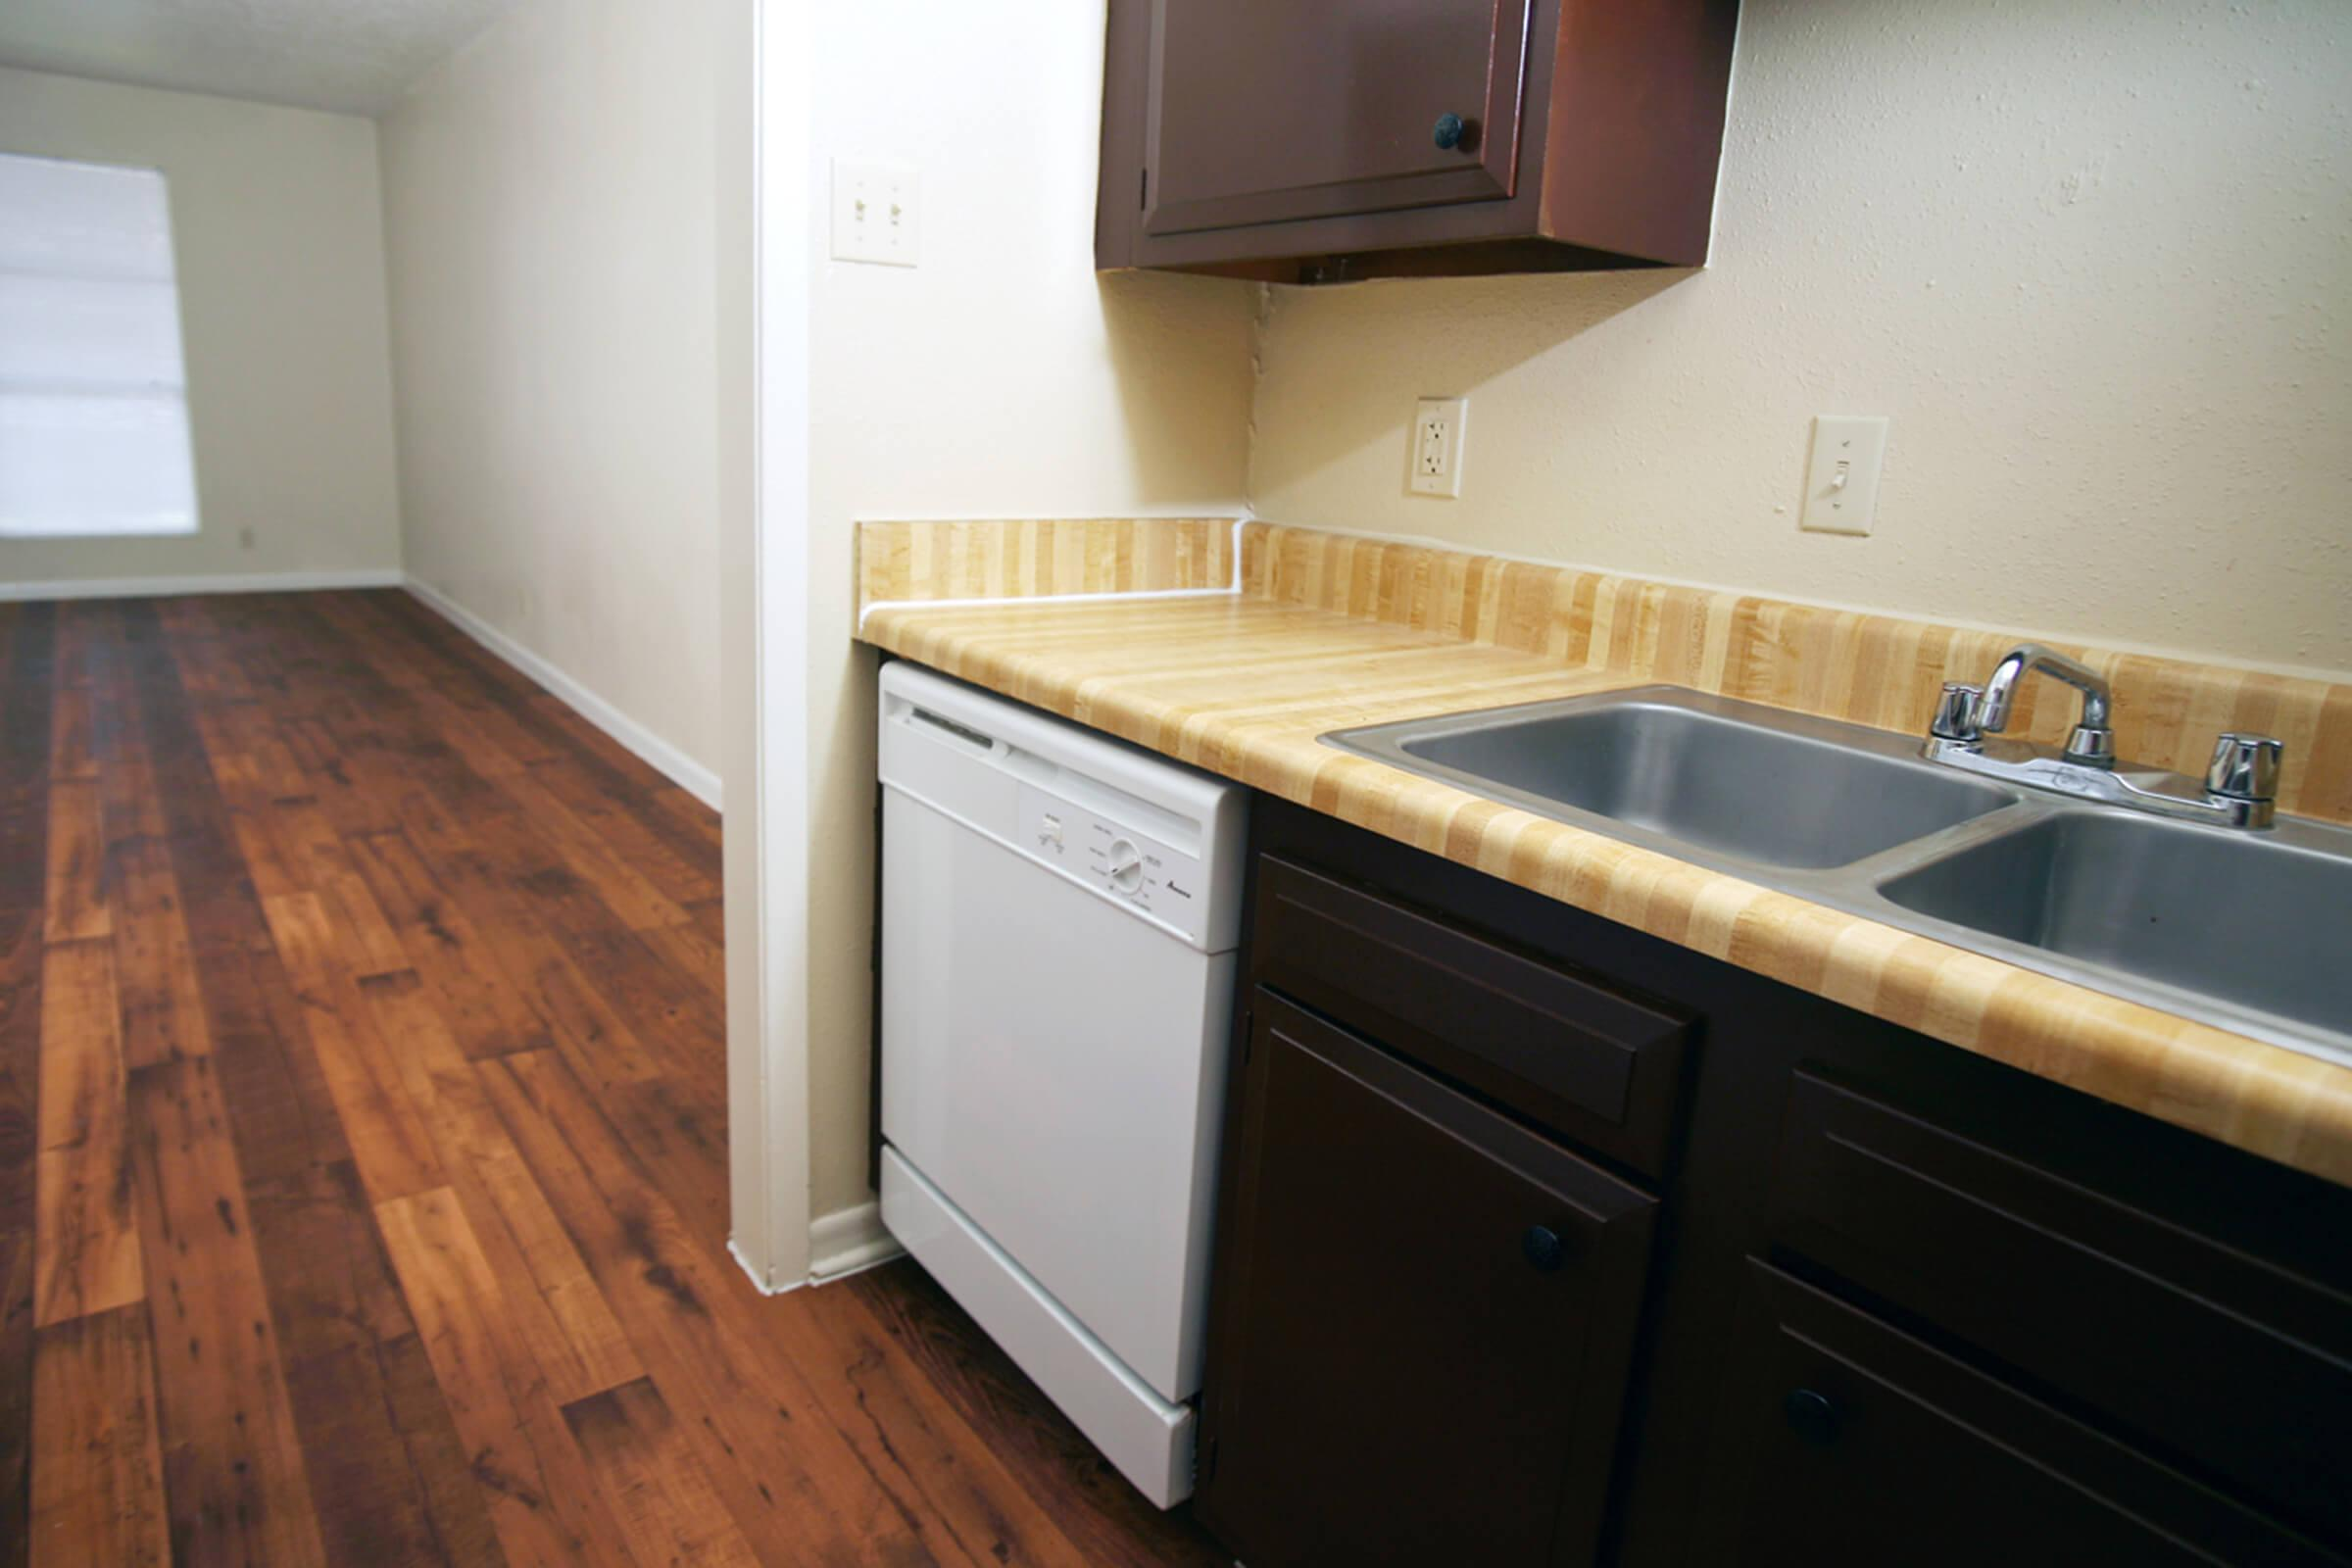 a kitchen with a sink and a wood floor